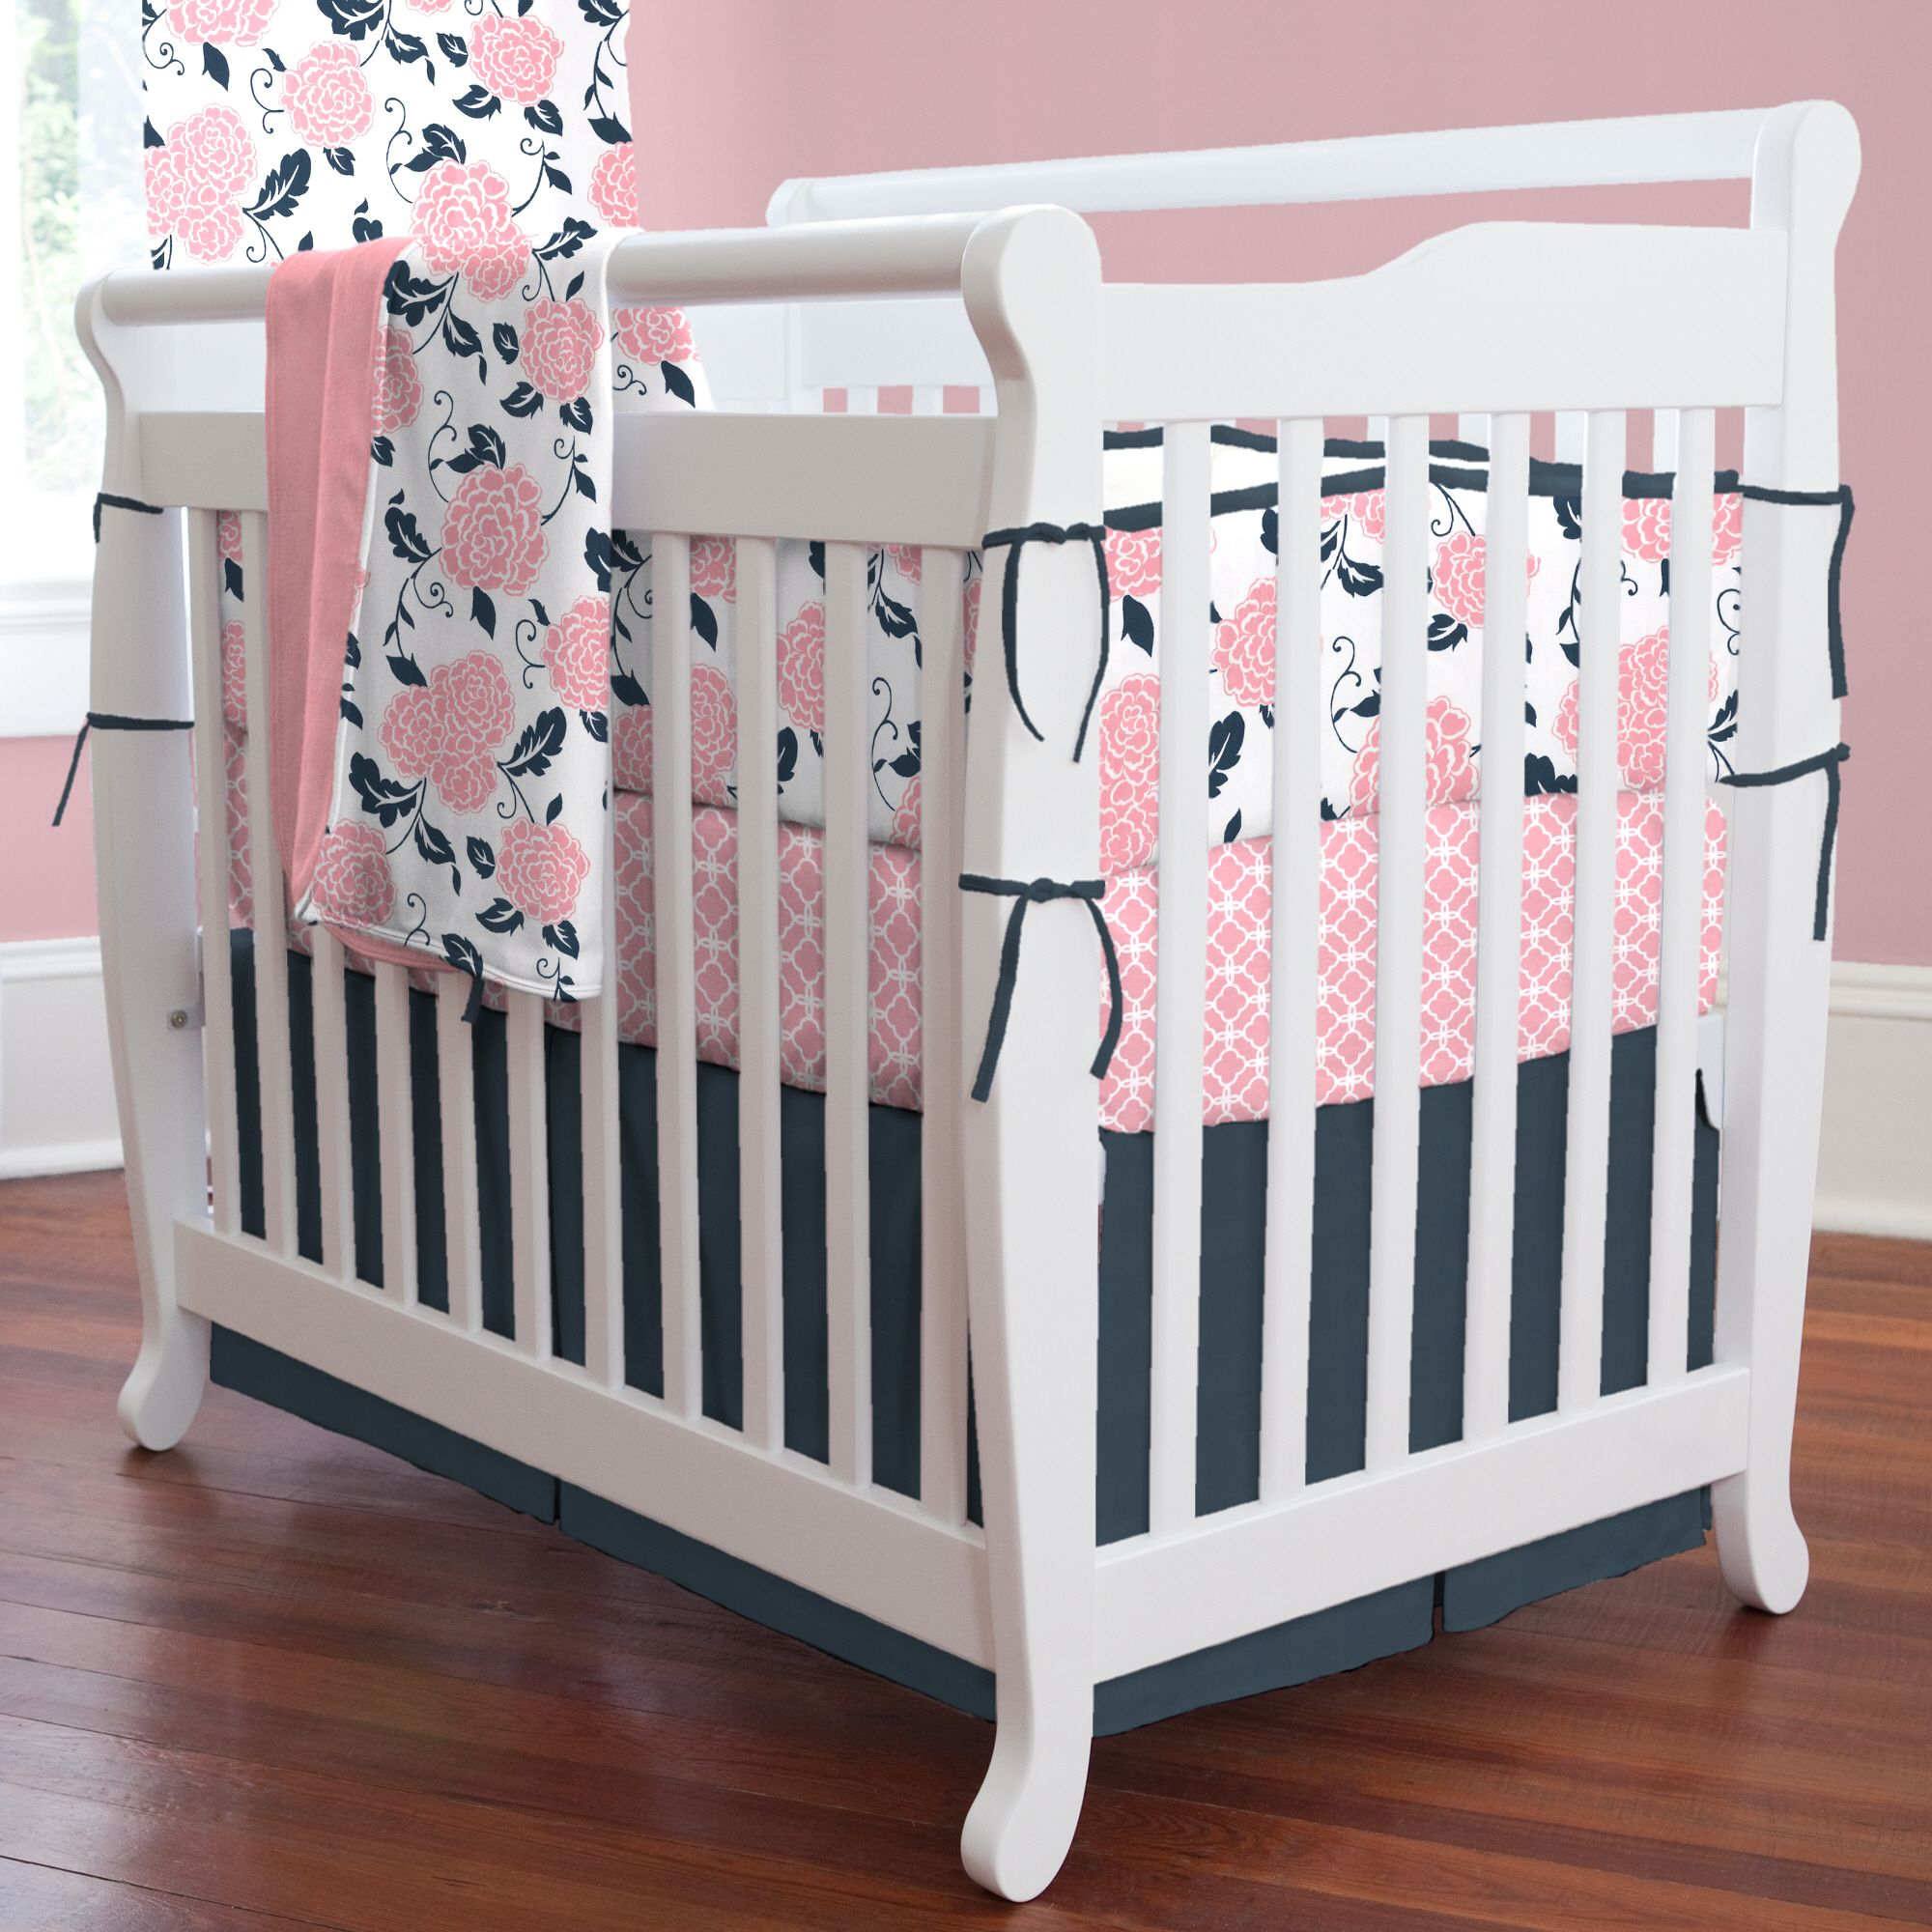 Coral and Navy Floral Mini Crib Bedding carouseldesigns